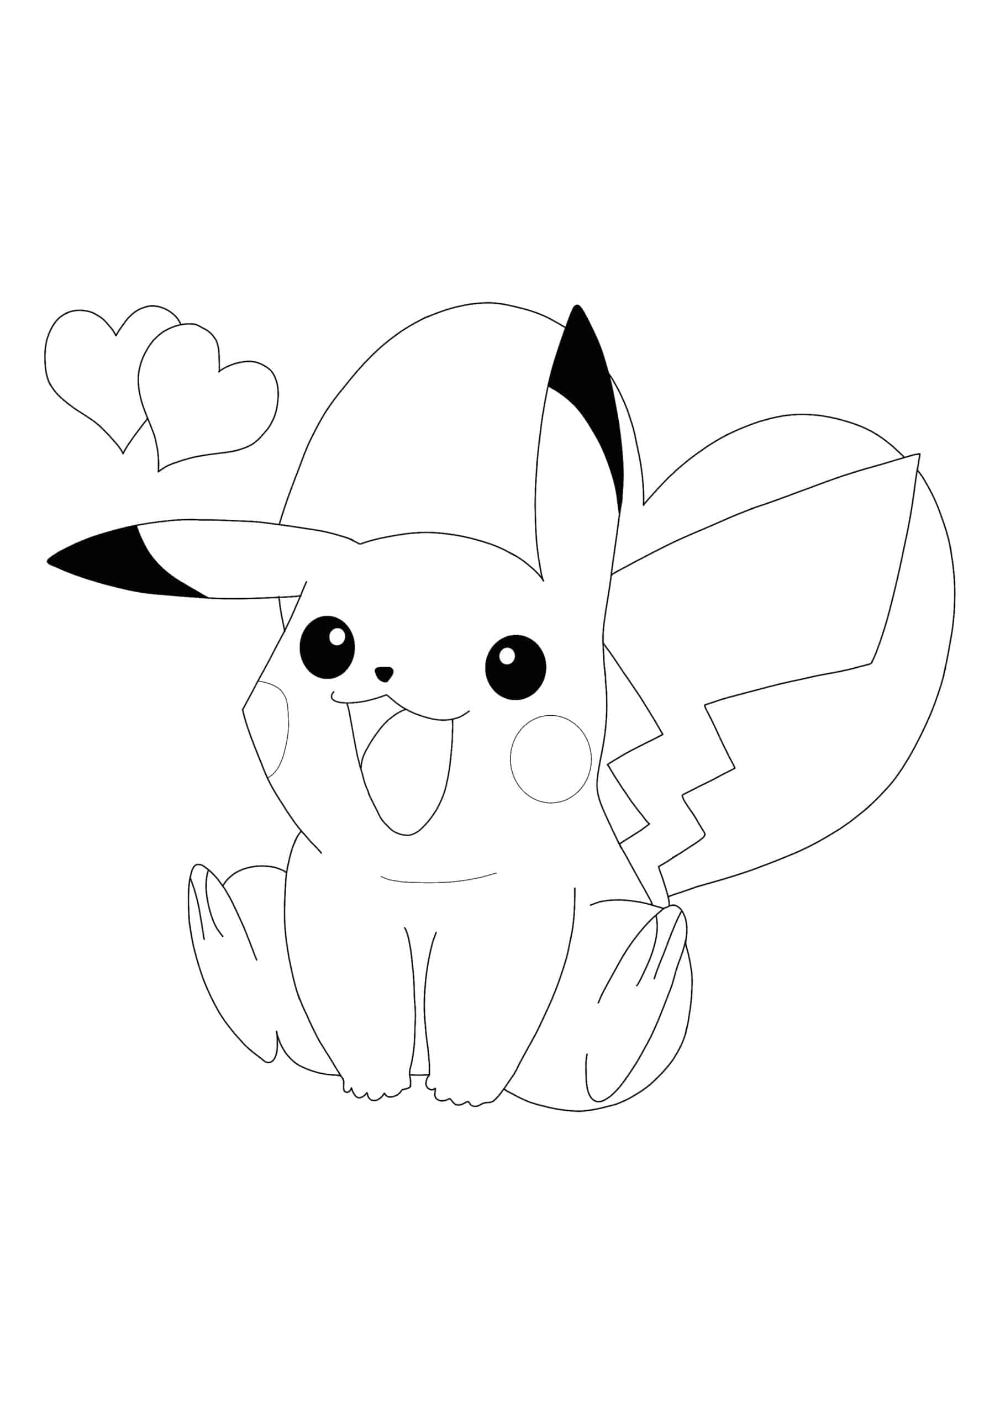 Cute Pikachu Coloring Pages 2 Free Coloring Sheets 2020 Pikachu Coloring Page Pokemon Coloring Pages Coloring Pages